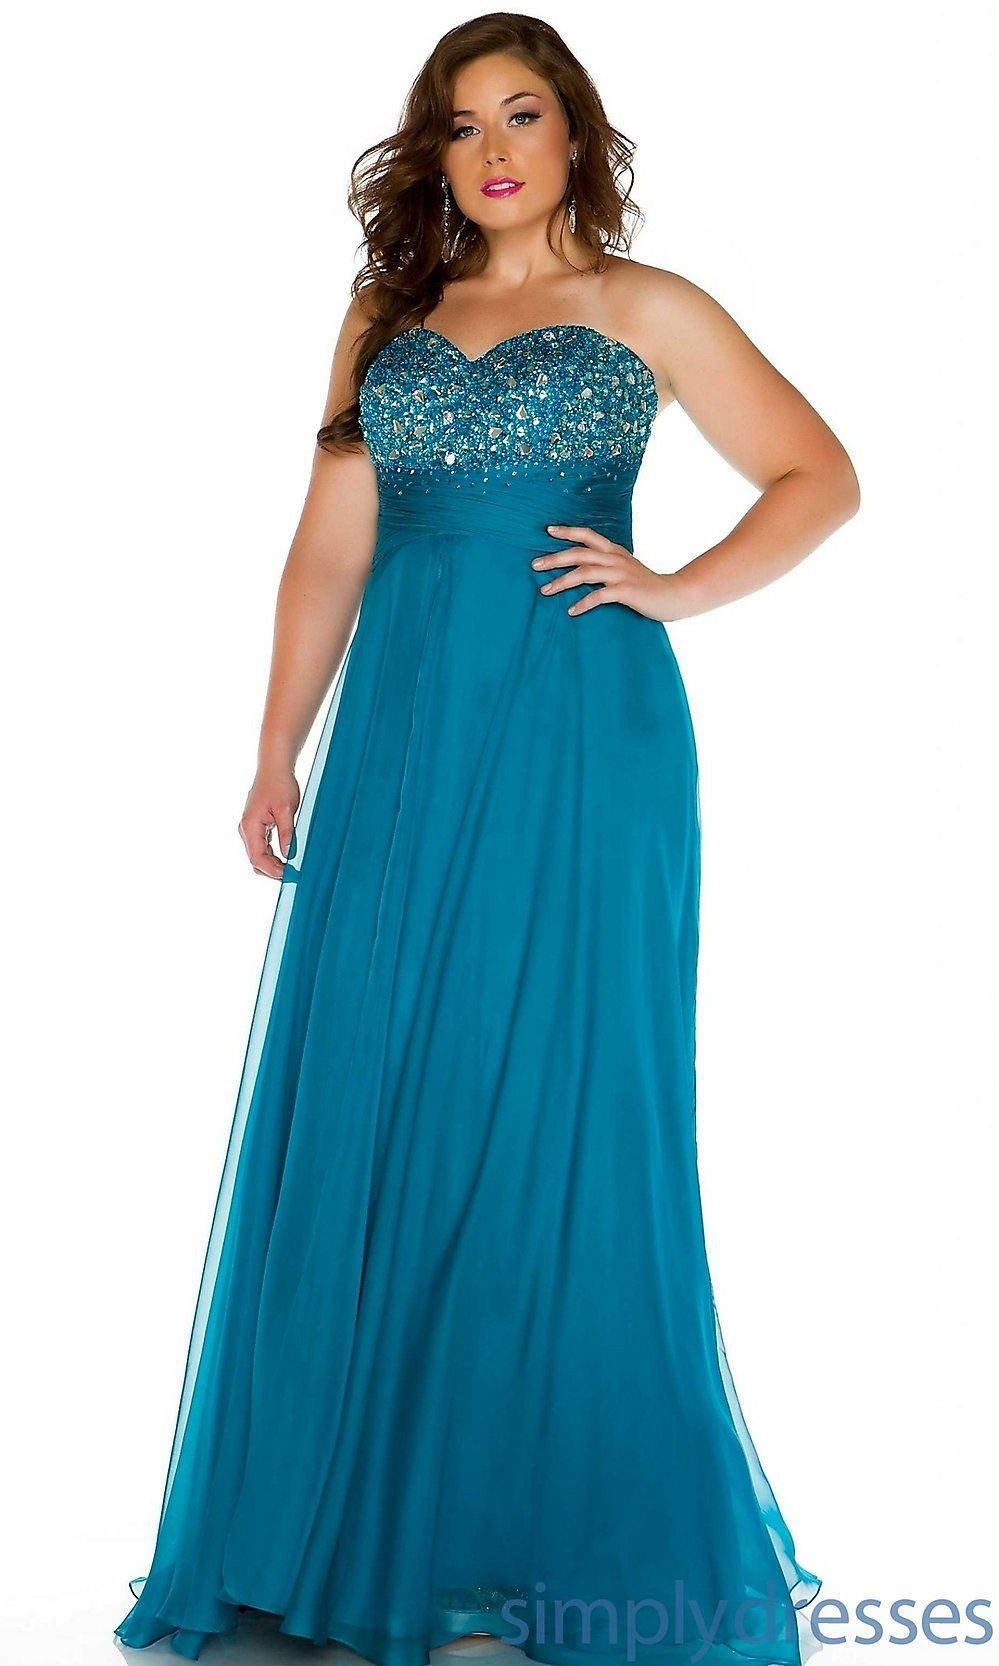 Plus Size Strapless Sweetheart Gown   # PLUS SIZE   Pinterest ...